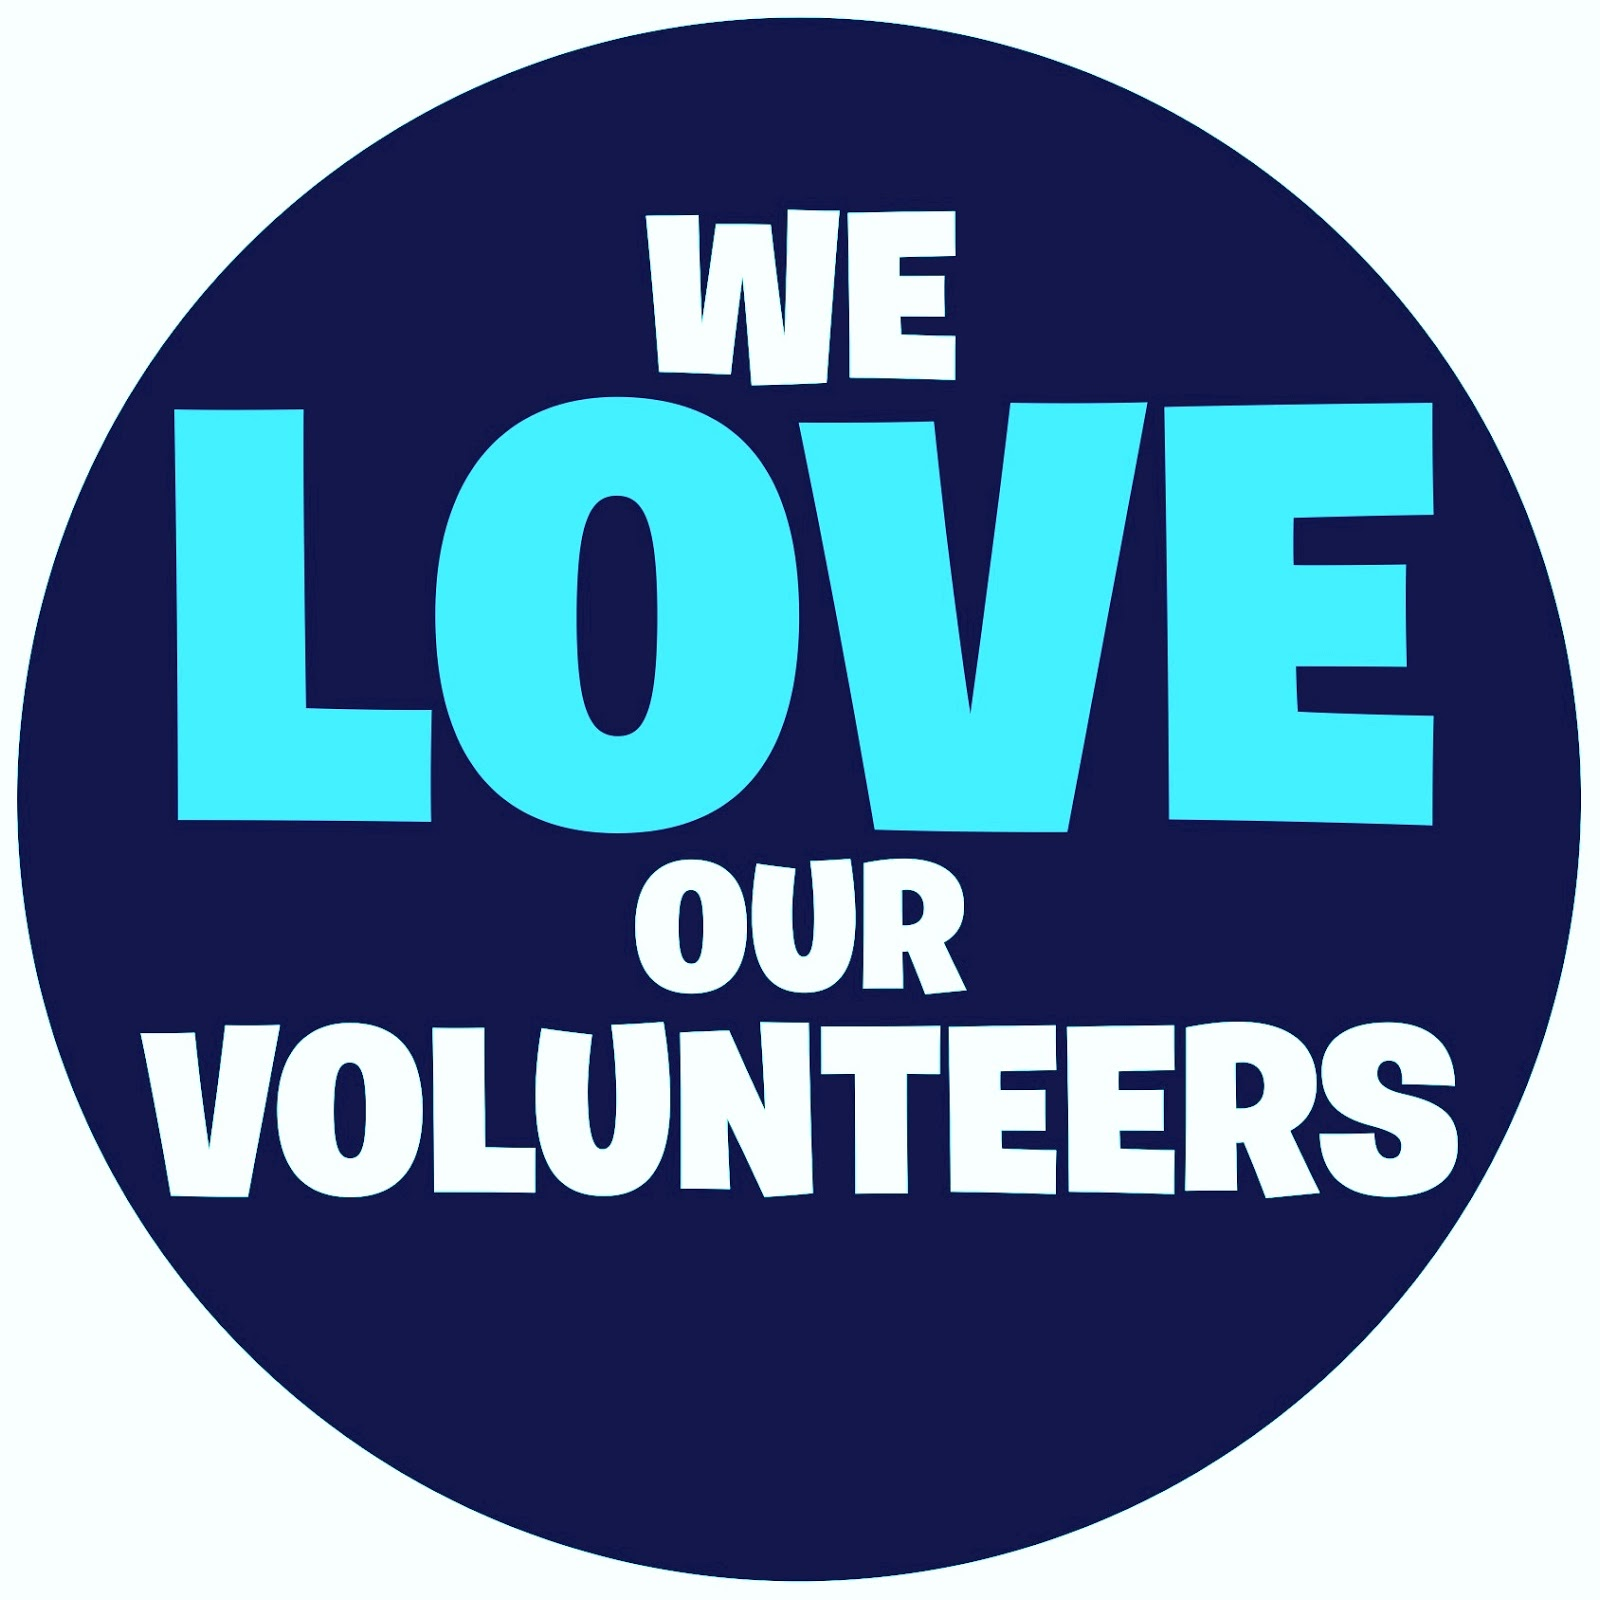 1600x1600 Volunteer Opportunities Clipart